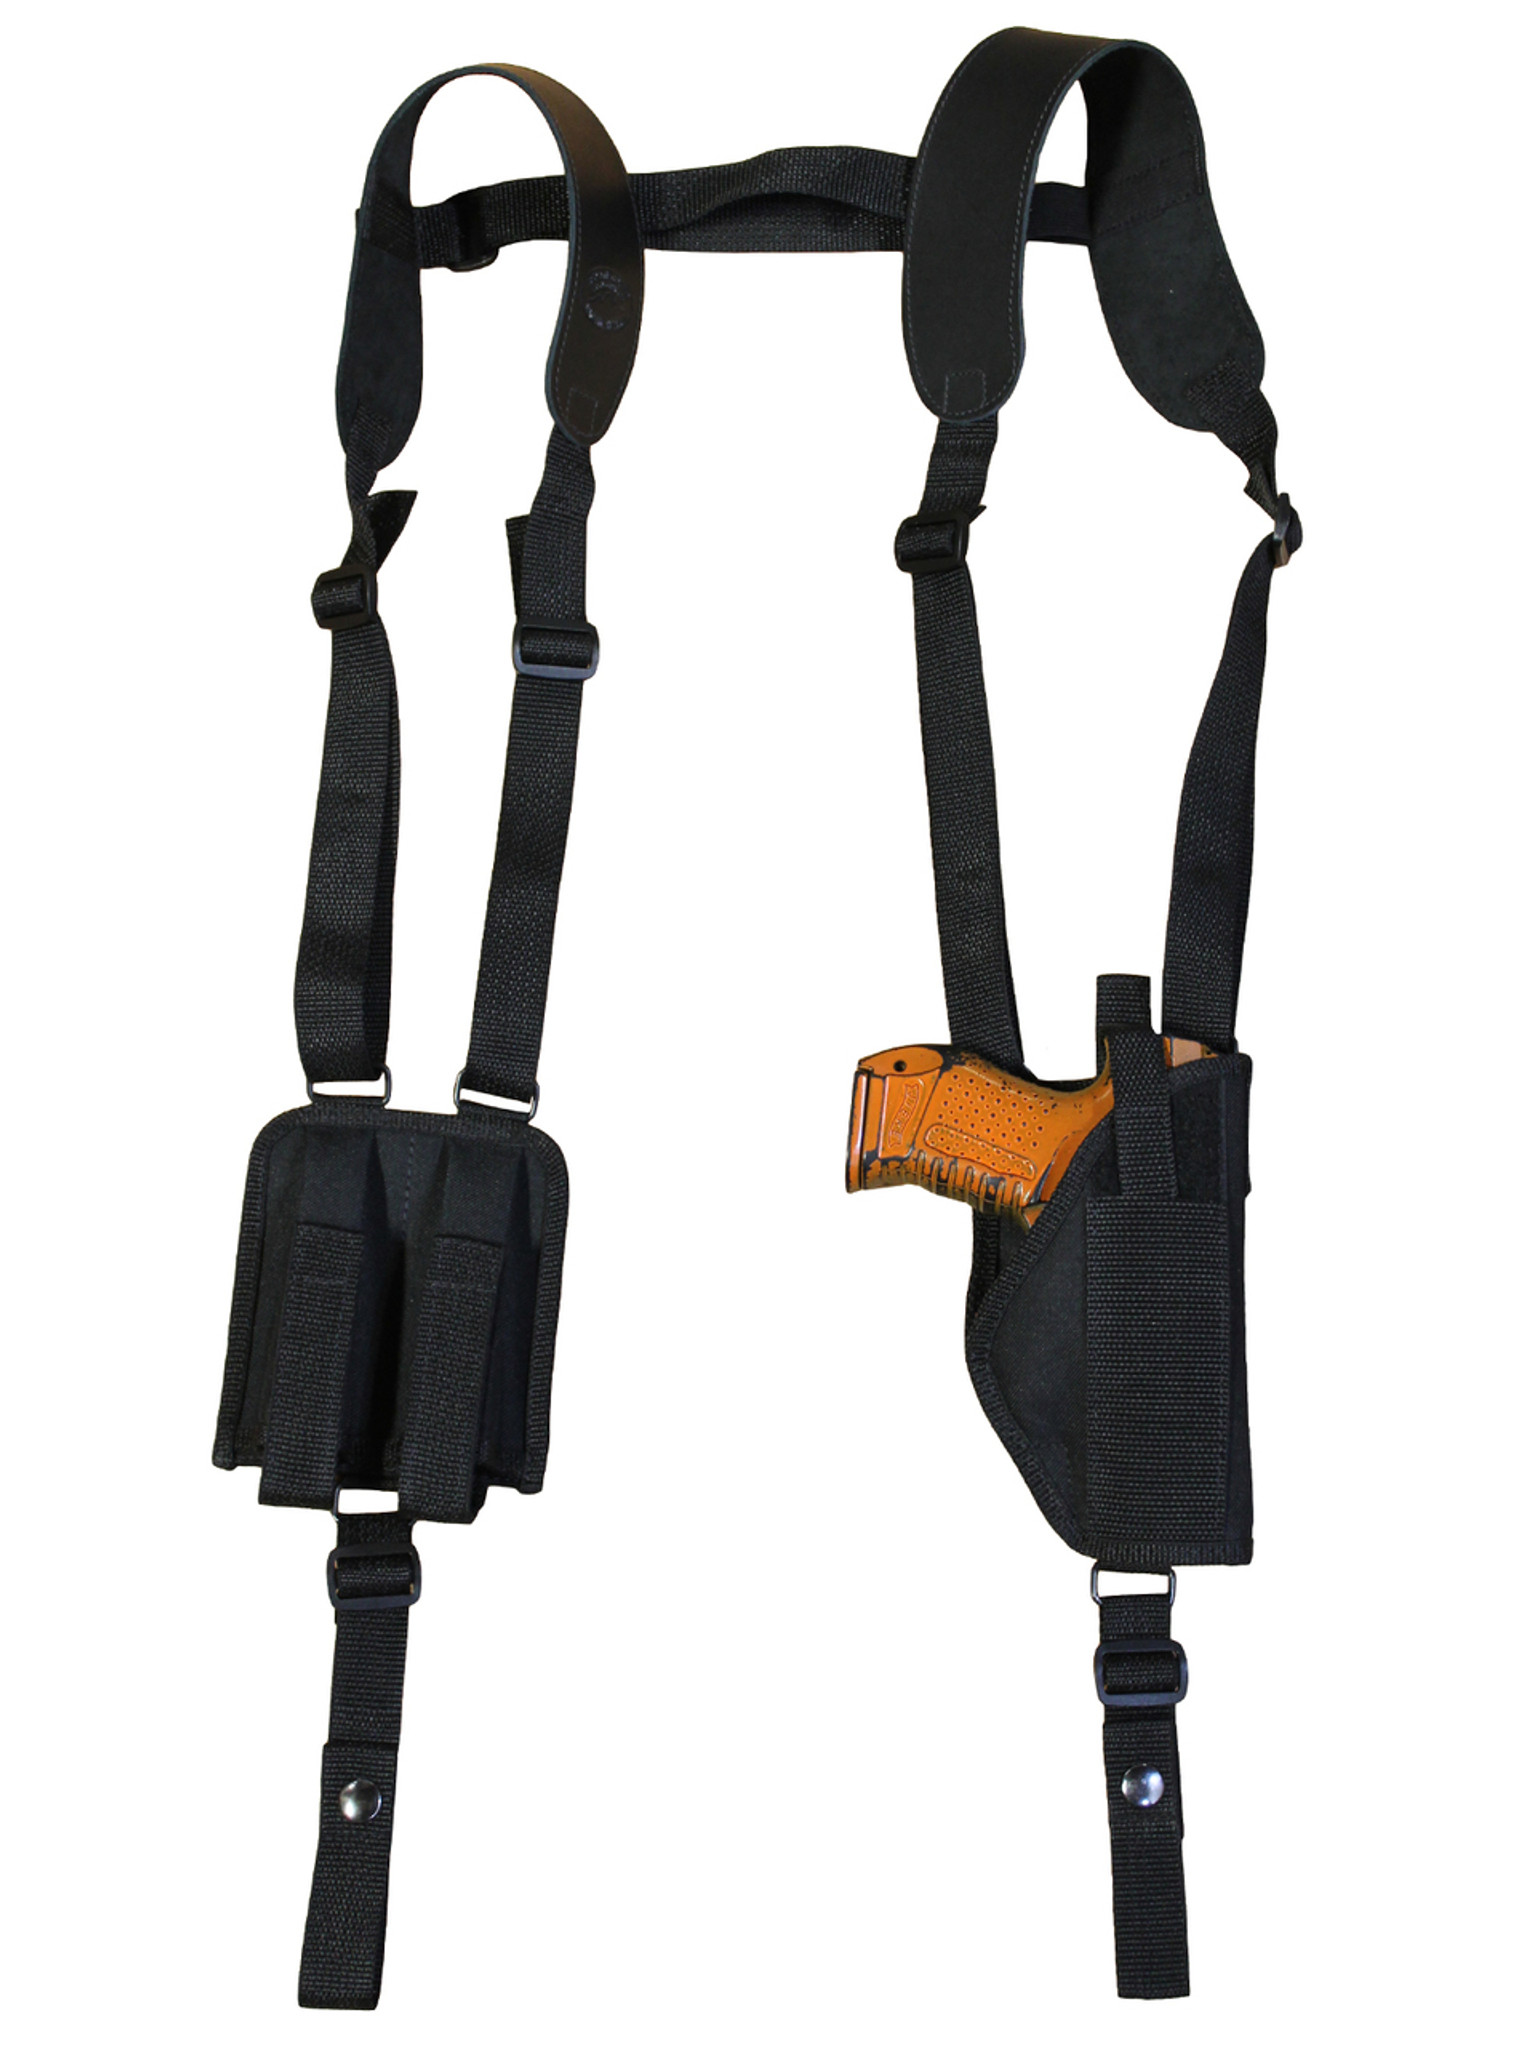 Vertical Shoulder Holster with Double Magazine Pouch for